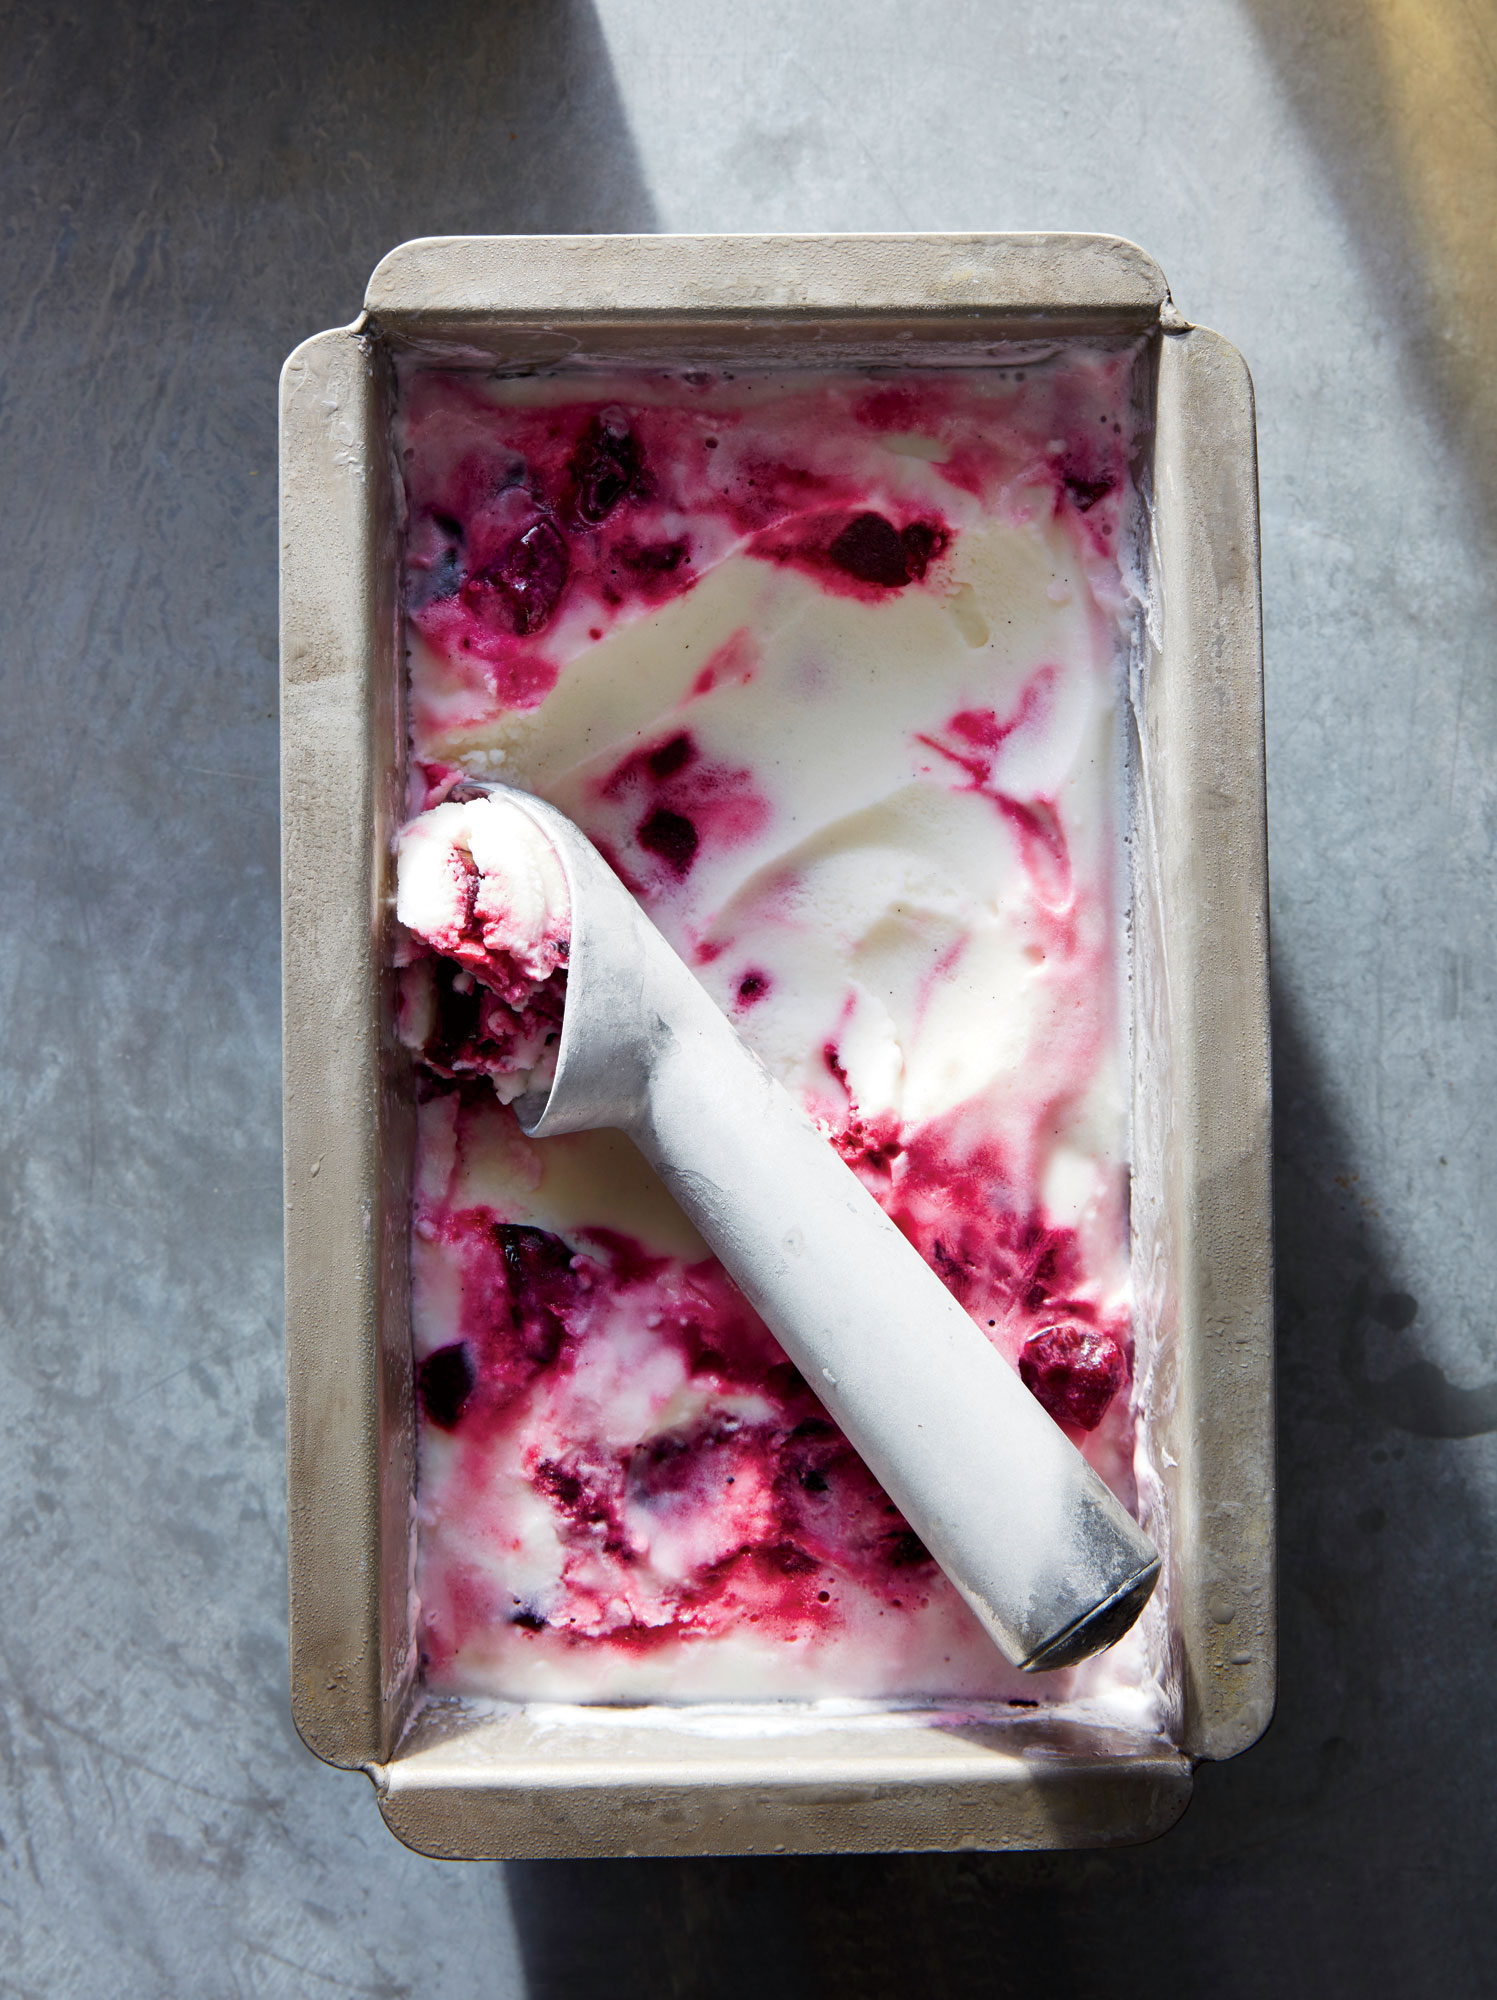 Vanilla Frozen Yogurt with Fresh Cherry Swirl